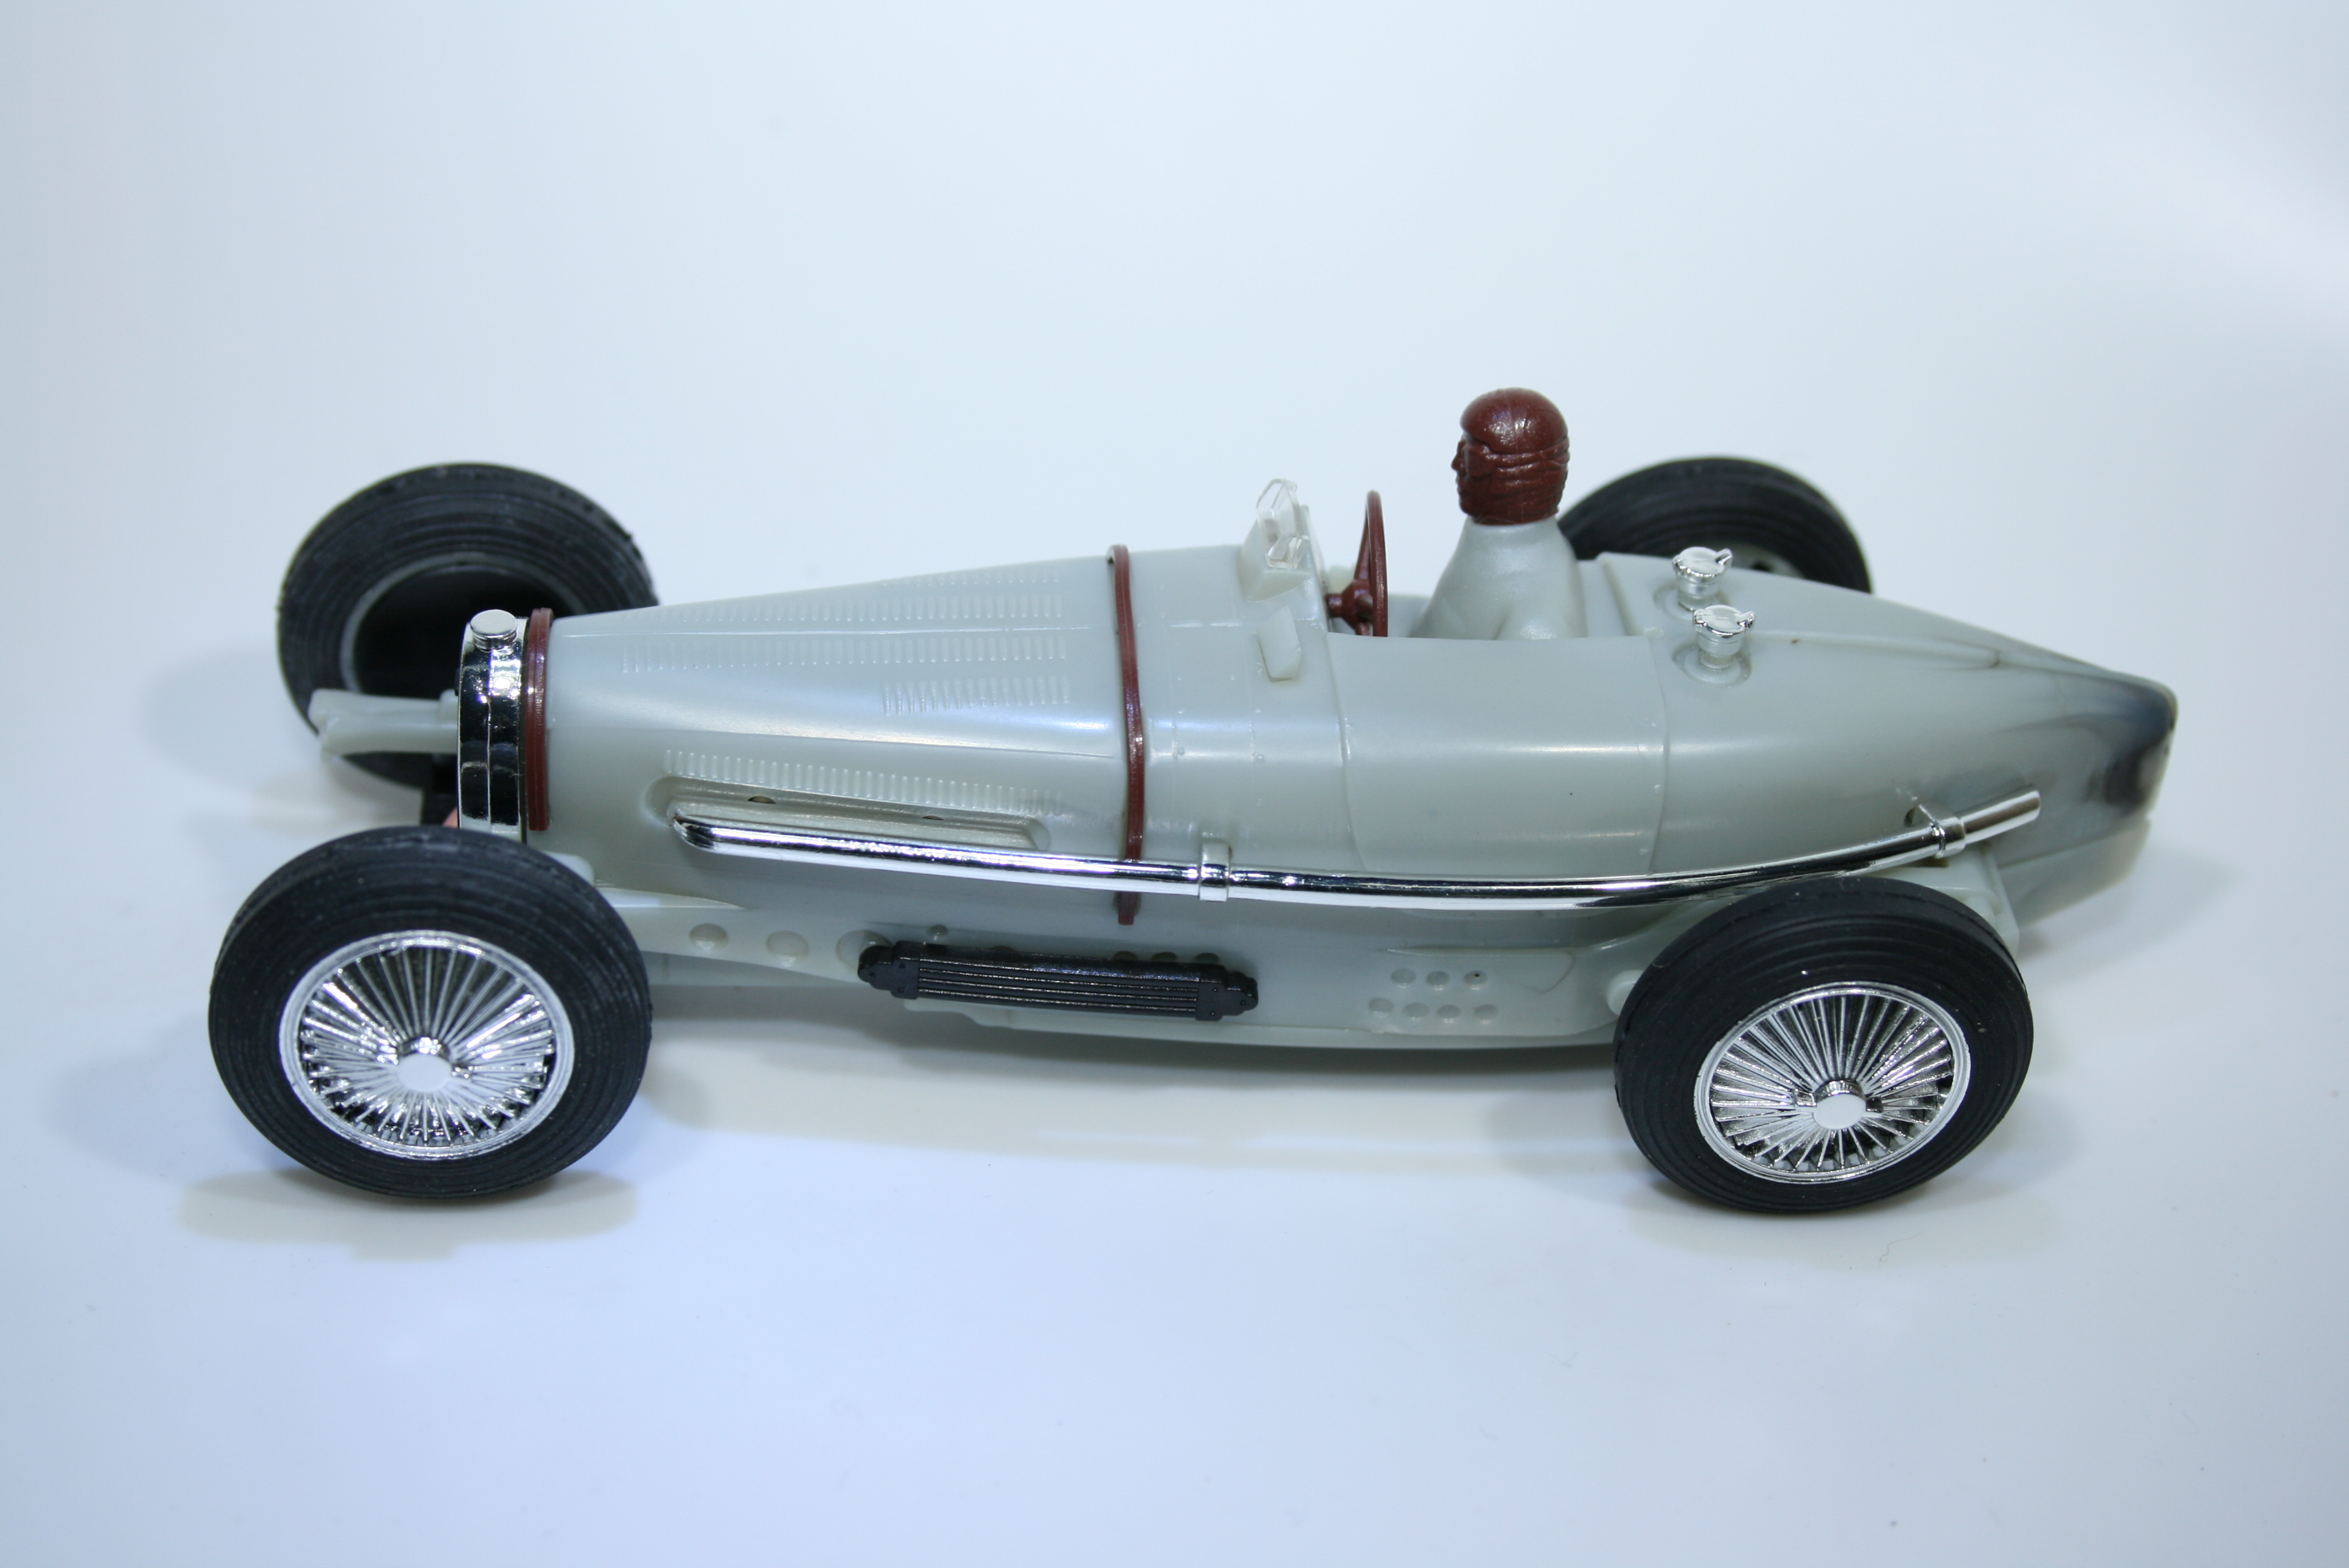 1129 Bugatti Type 59 1933-36 R Dreyfus Pink Kar CV002 1995 Pre Production